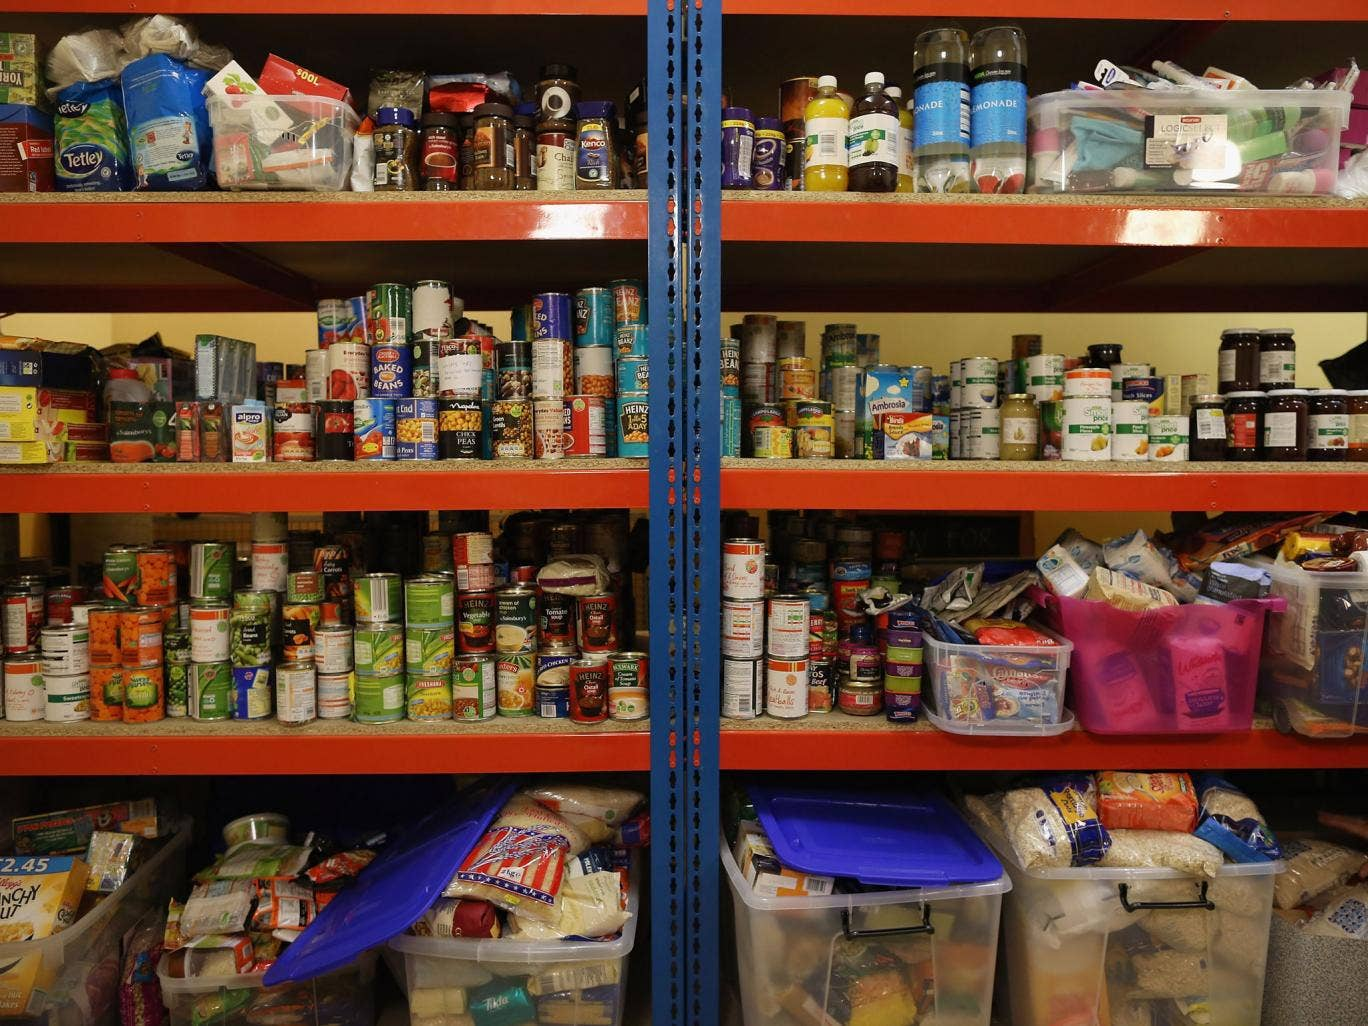 This winter, the Red Cross will start collecting and distributing food aid to the needy in the UK for the first time since the Second World War